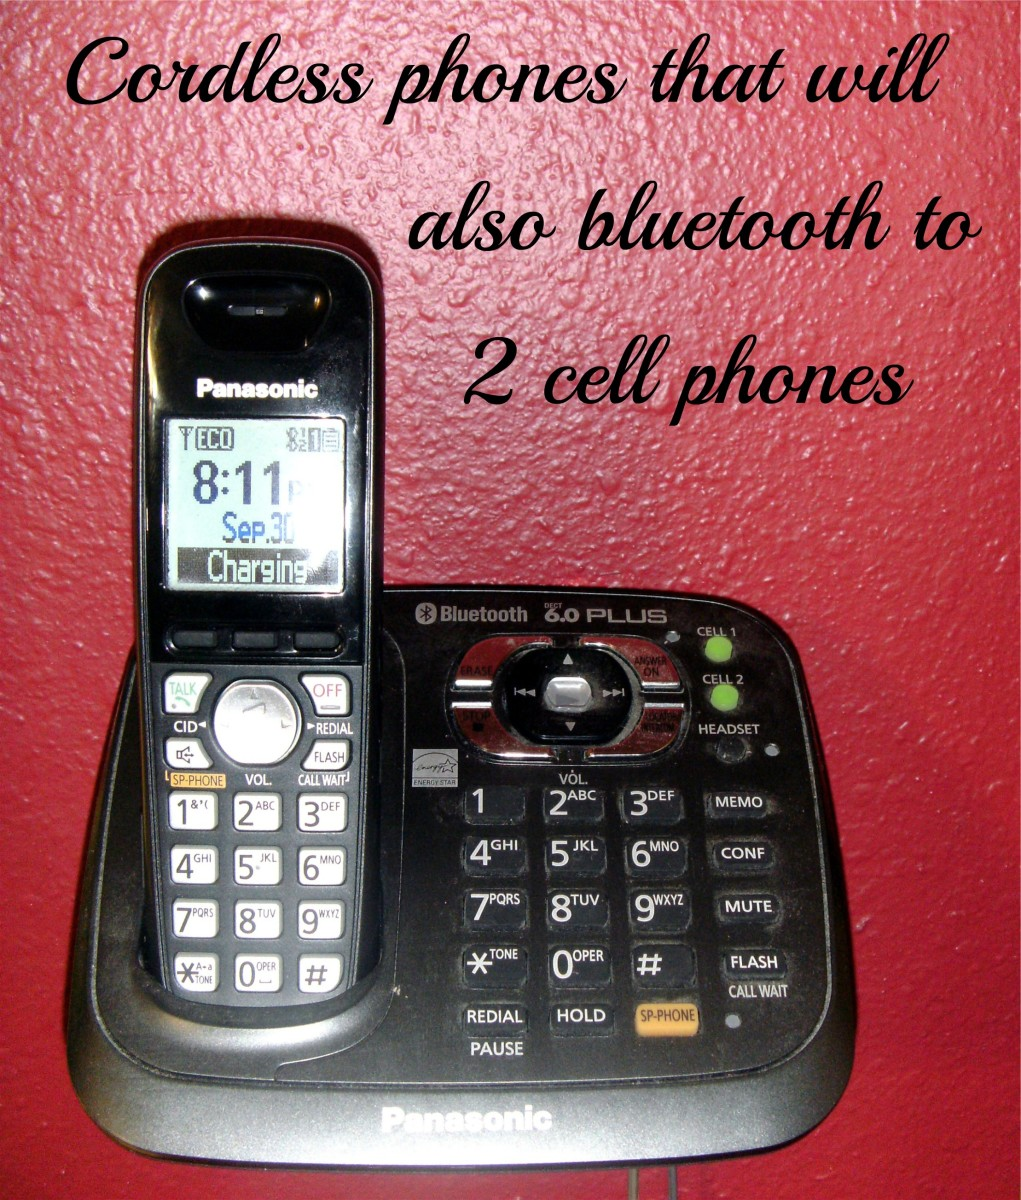 A Cordless Bluetooth Home Phone Review-Panasonic KX-TG Phones